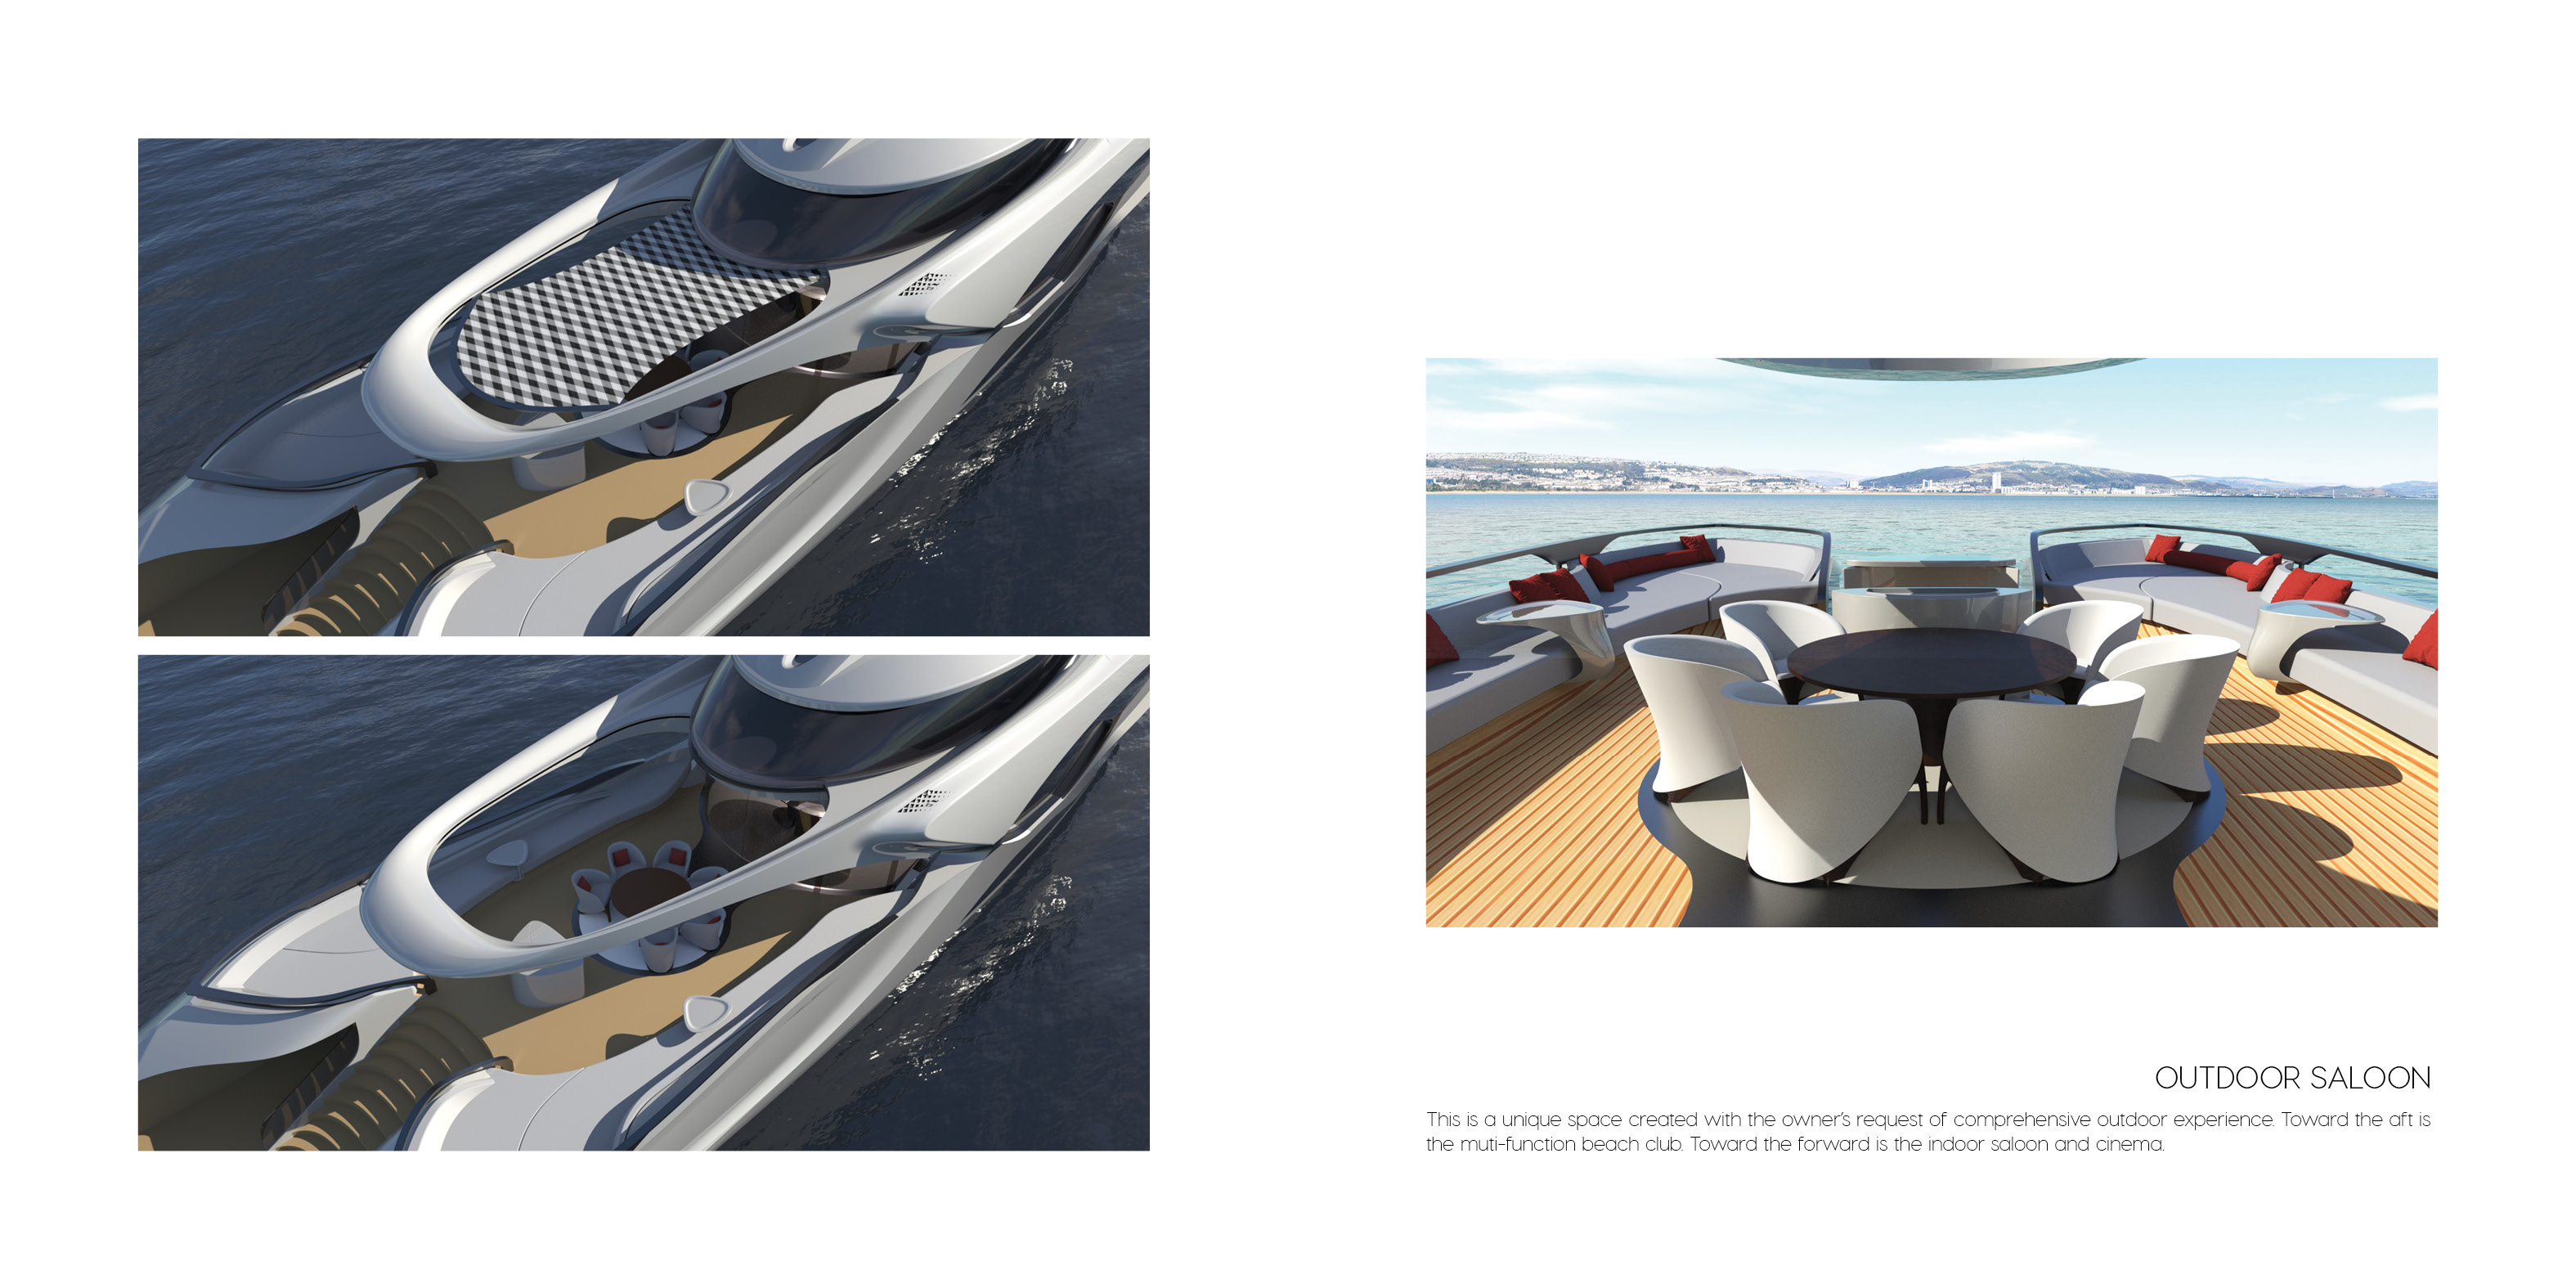 Outdoor Saloon - Superyacht concept CERCIO designed by Baoqi Xiao